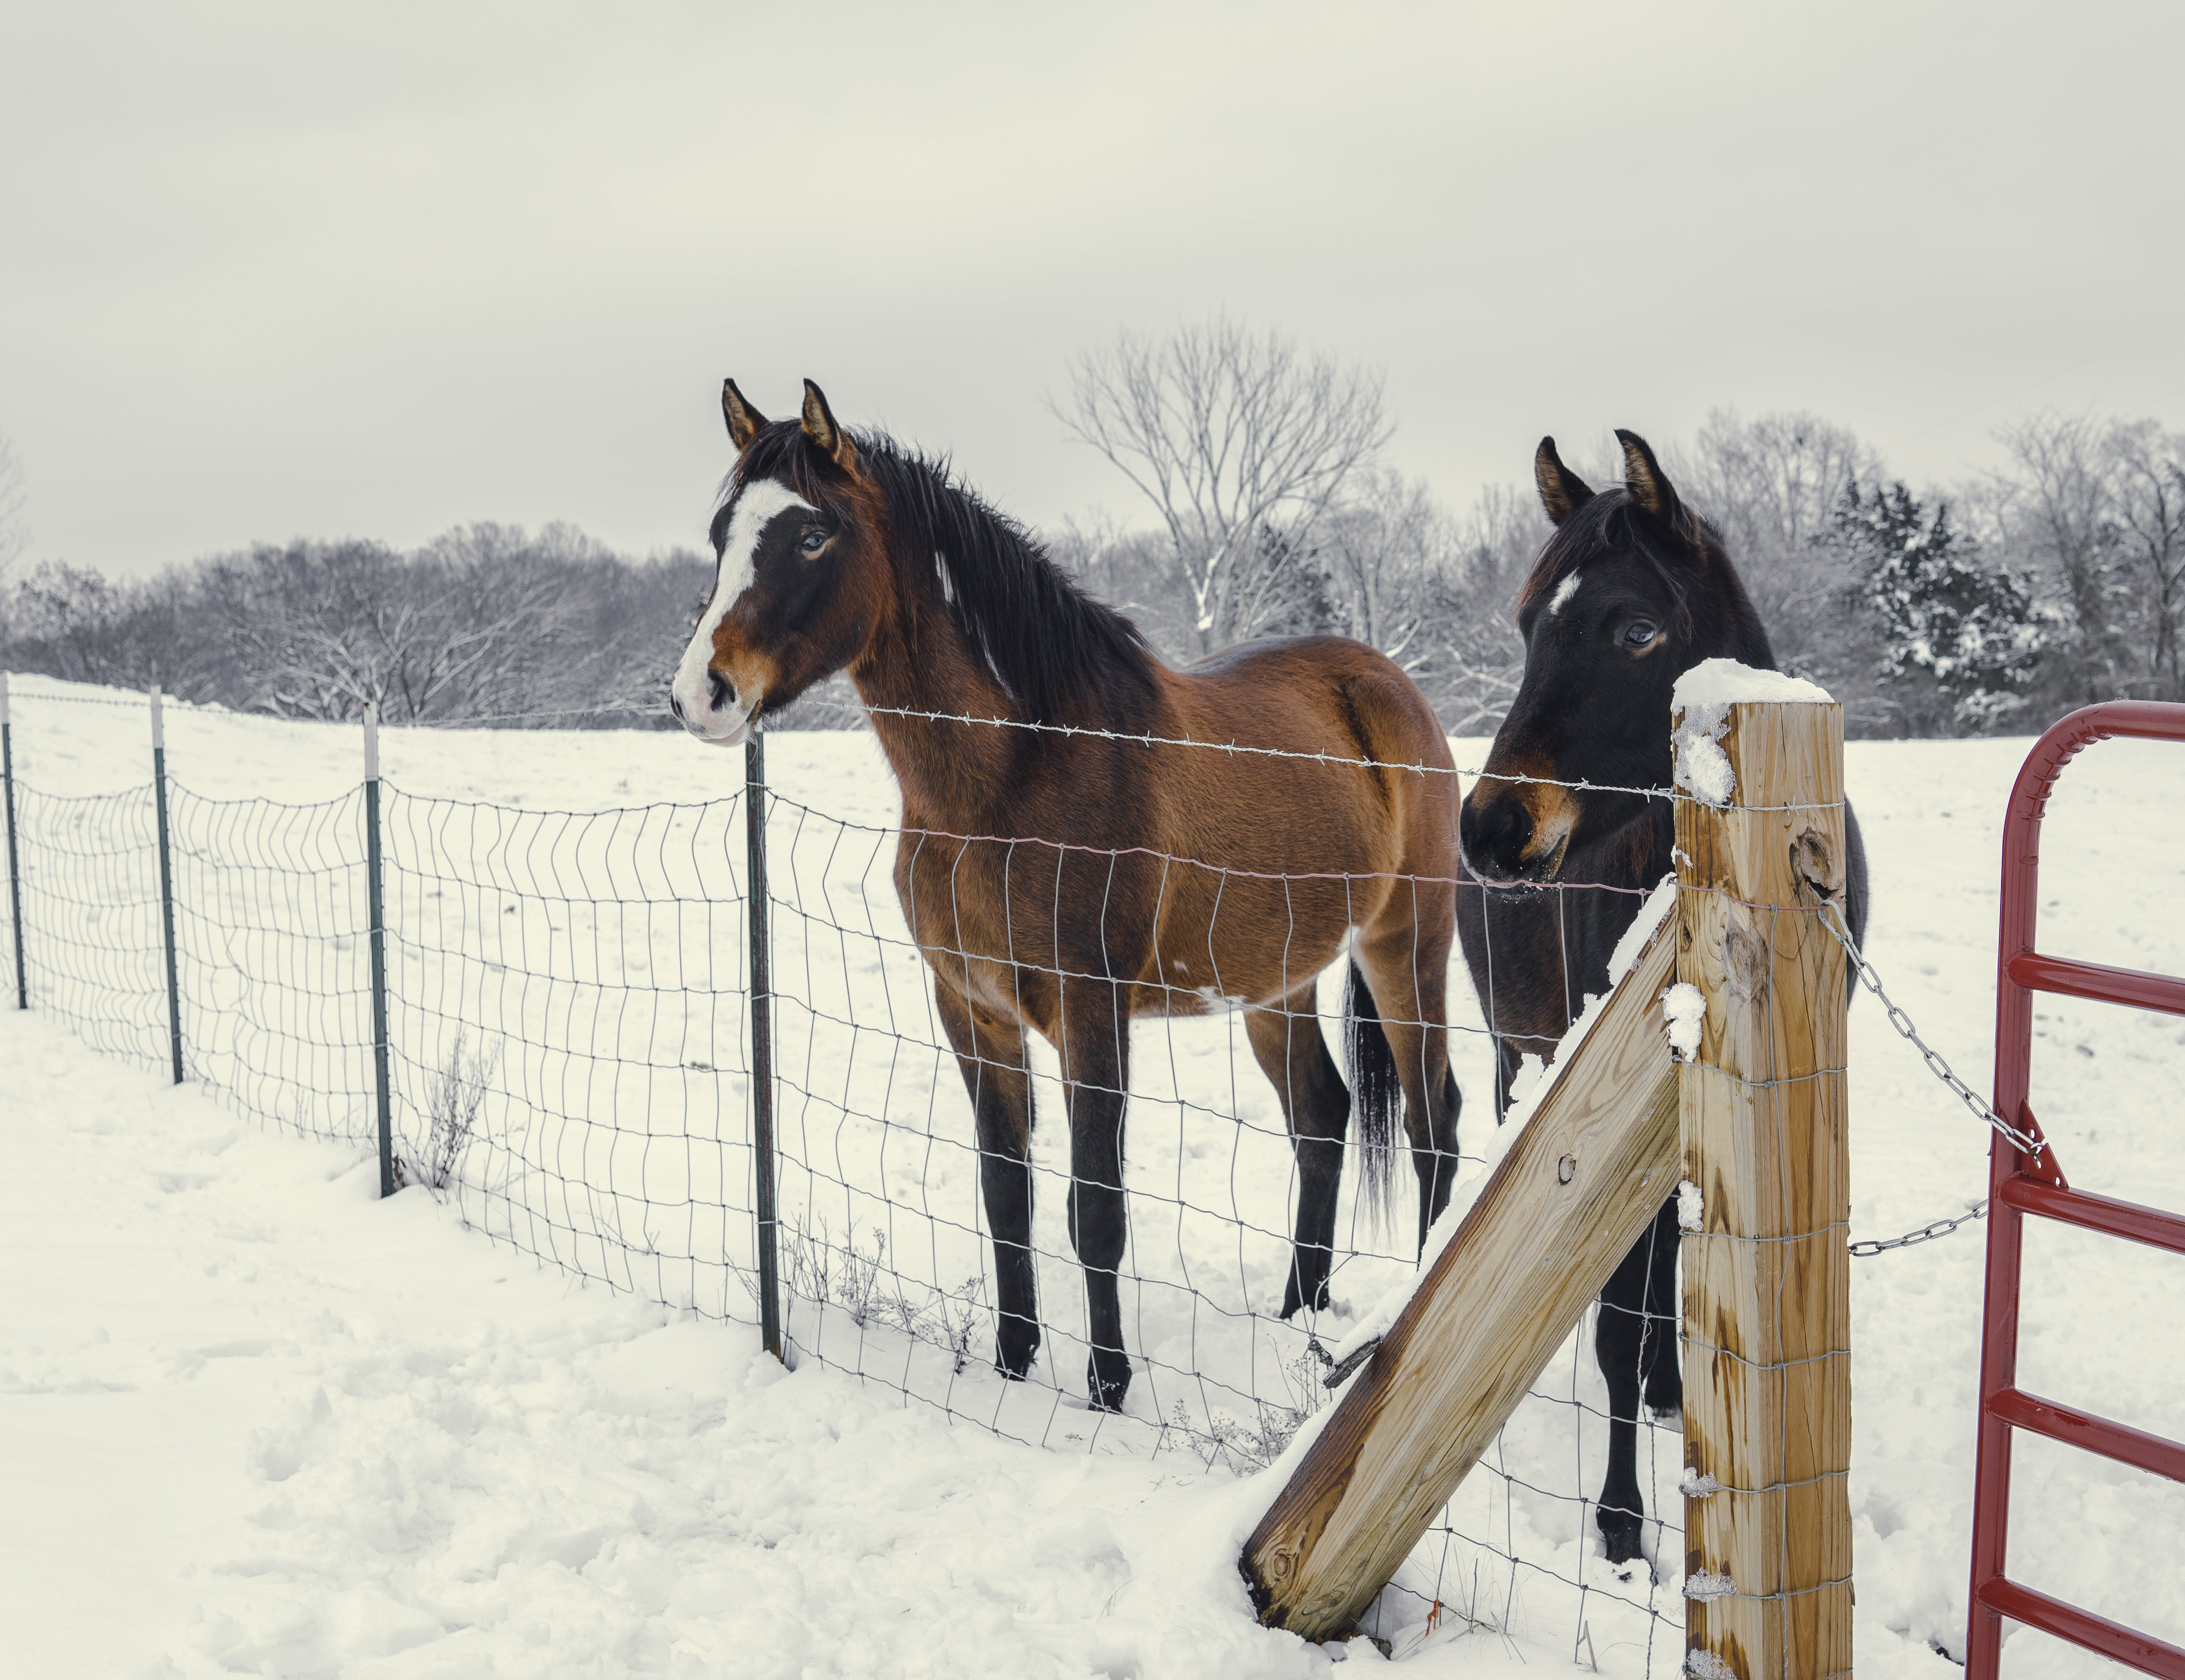 Two Black and Brown Horses